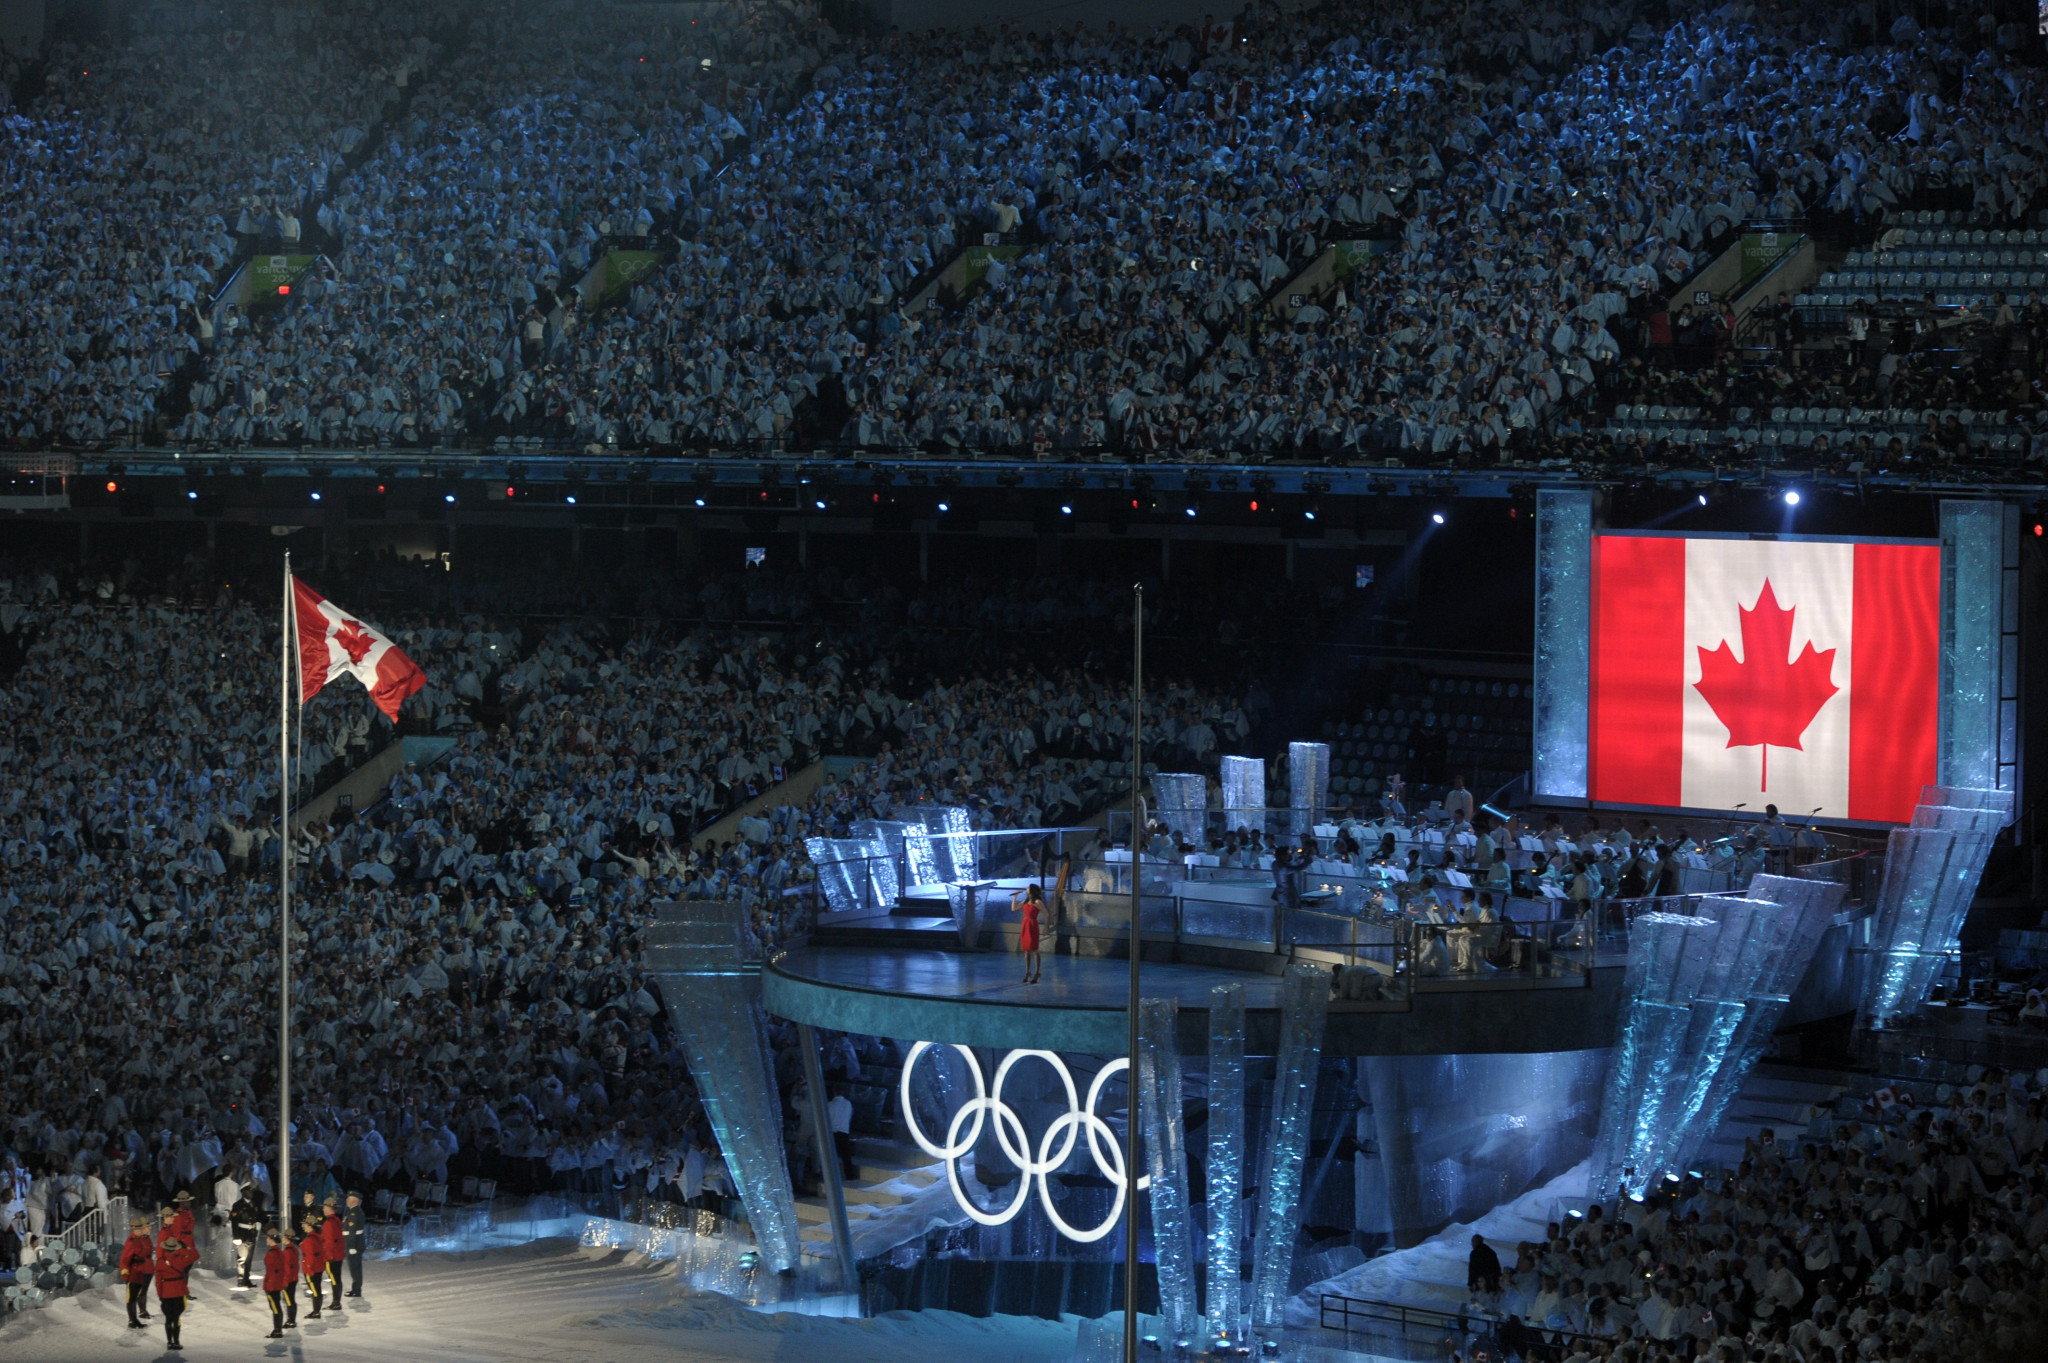 The Vancouver 2010 Winter Olympics opened 10 years ago ©Getty Images